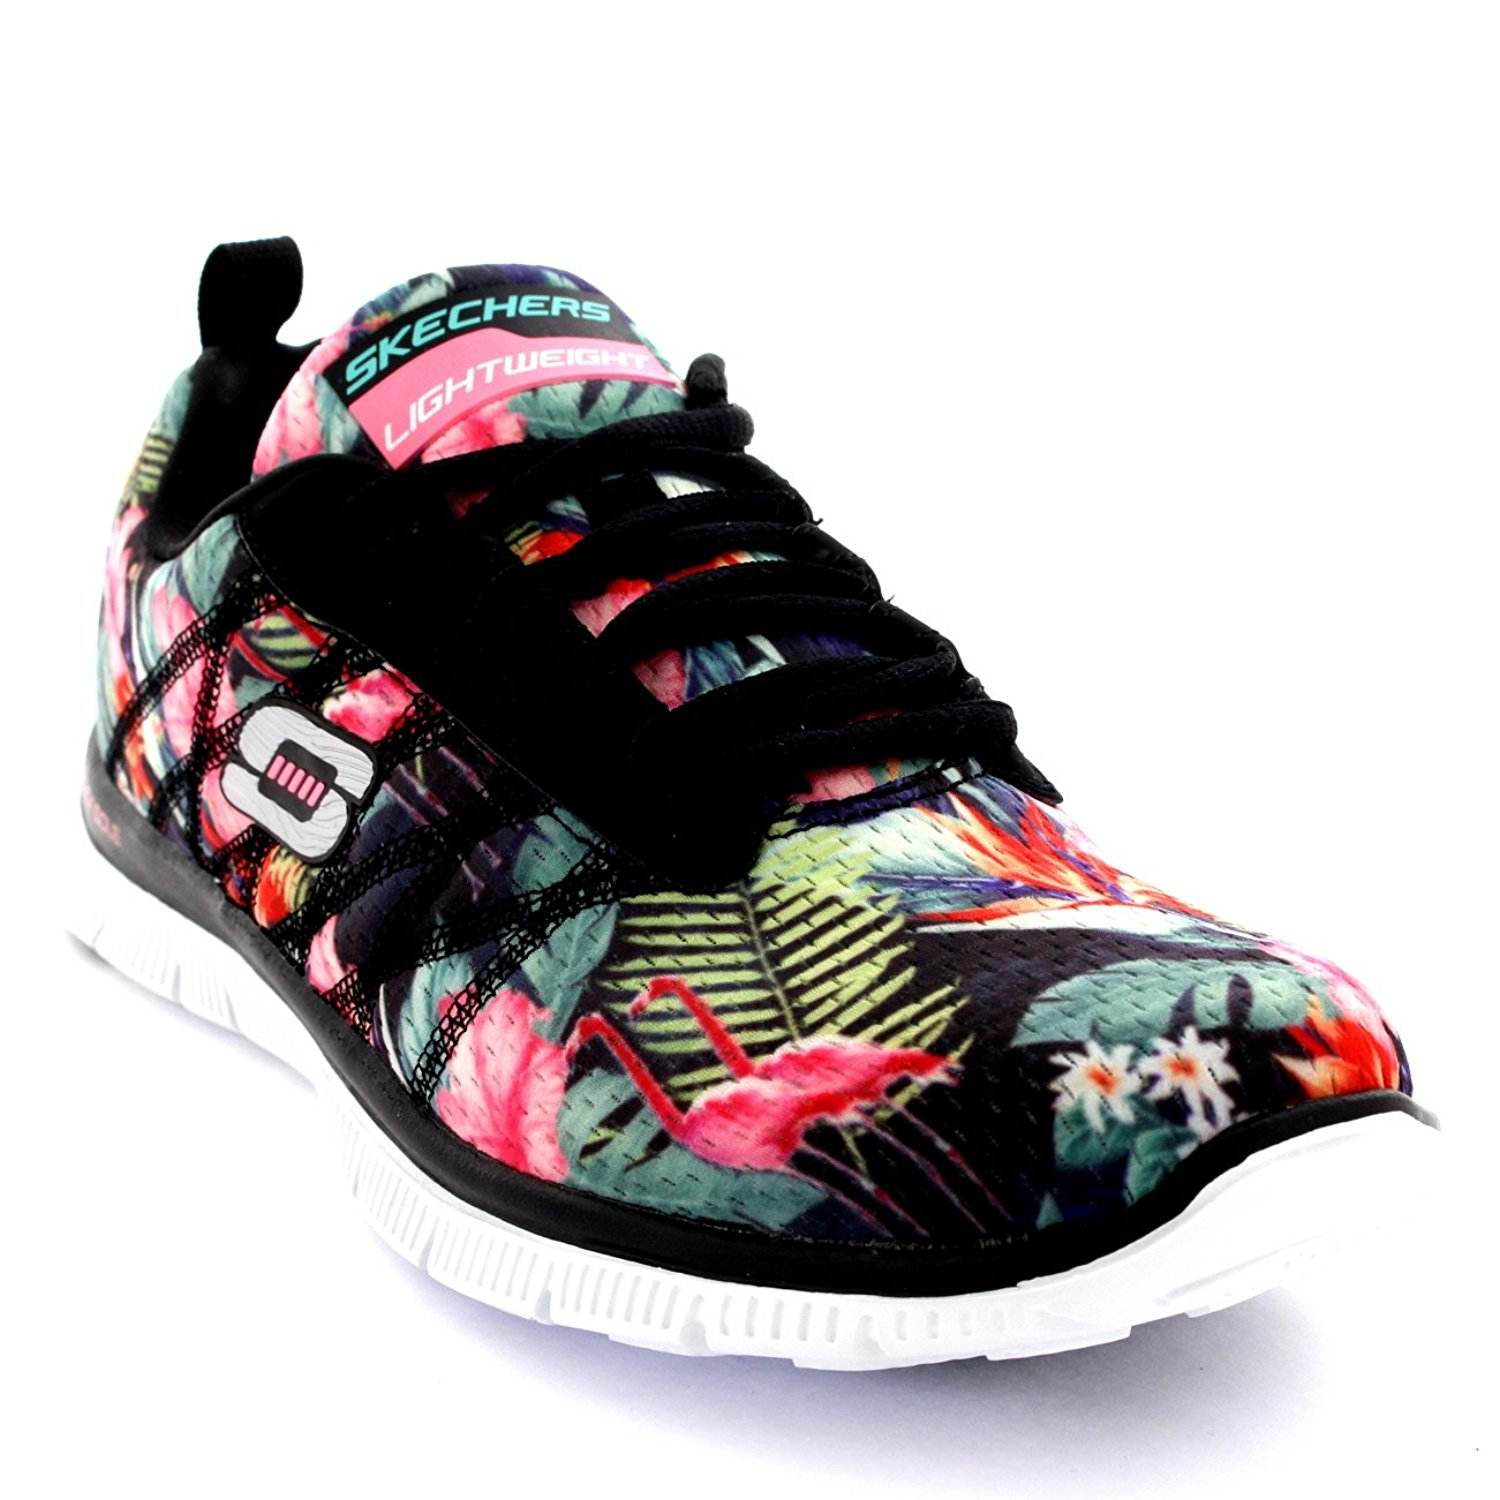 488d8cfb0ecf Womens Skechers Flex Appeal Floral Bloom Sports Jogging Active Sneakers